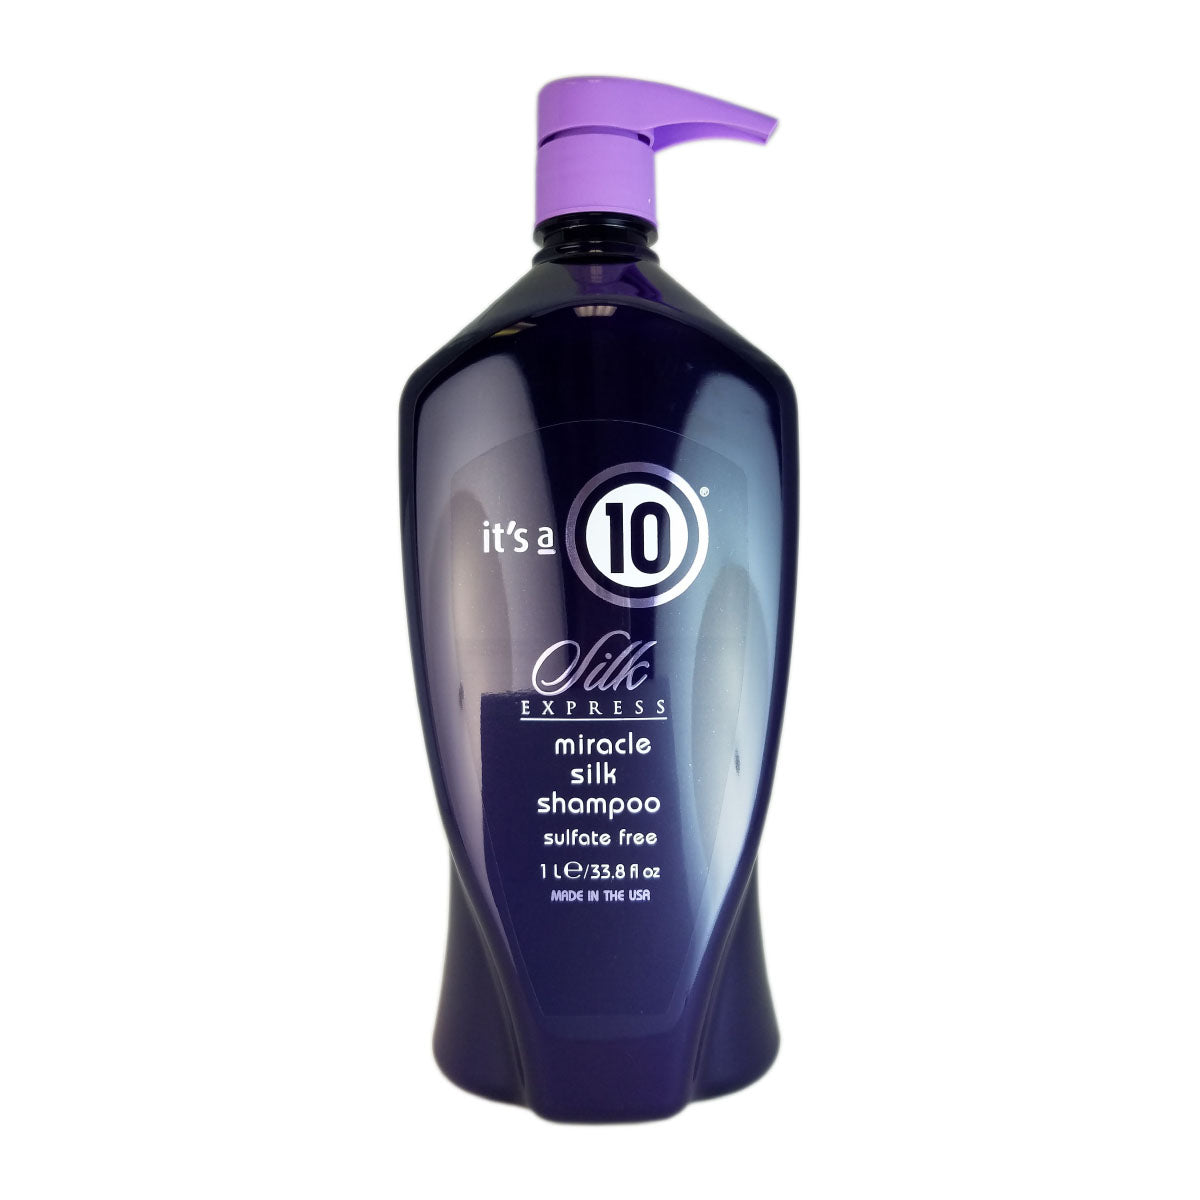 It's a 10 Silk Express Miracle Silk Hair Shampoo 33.8 oz